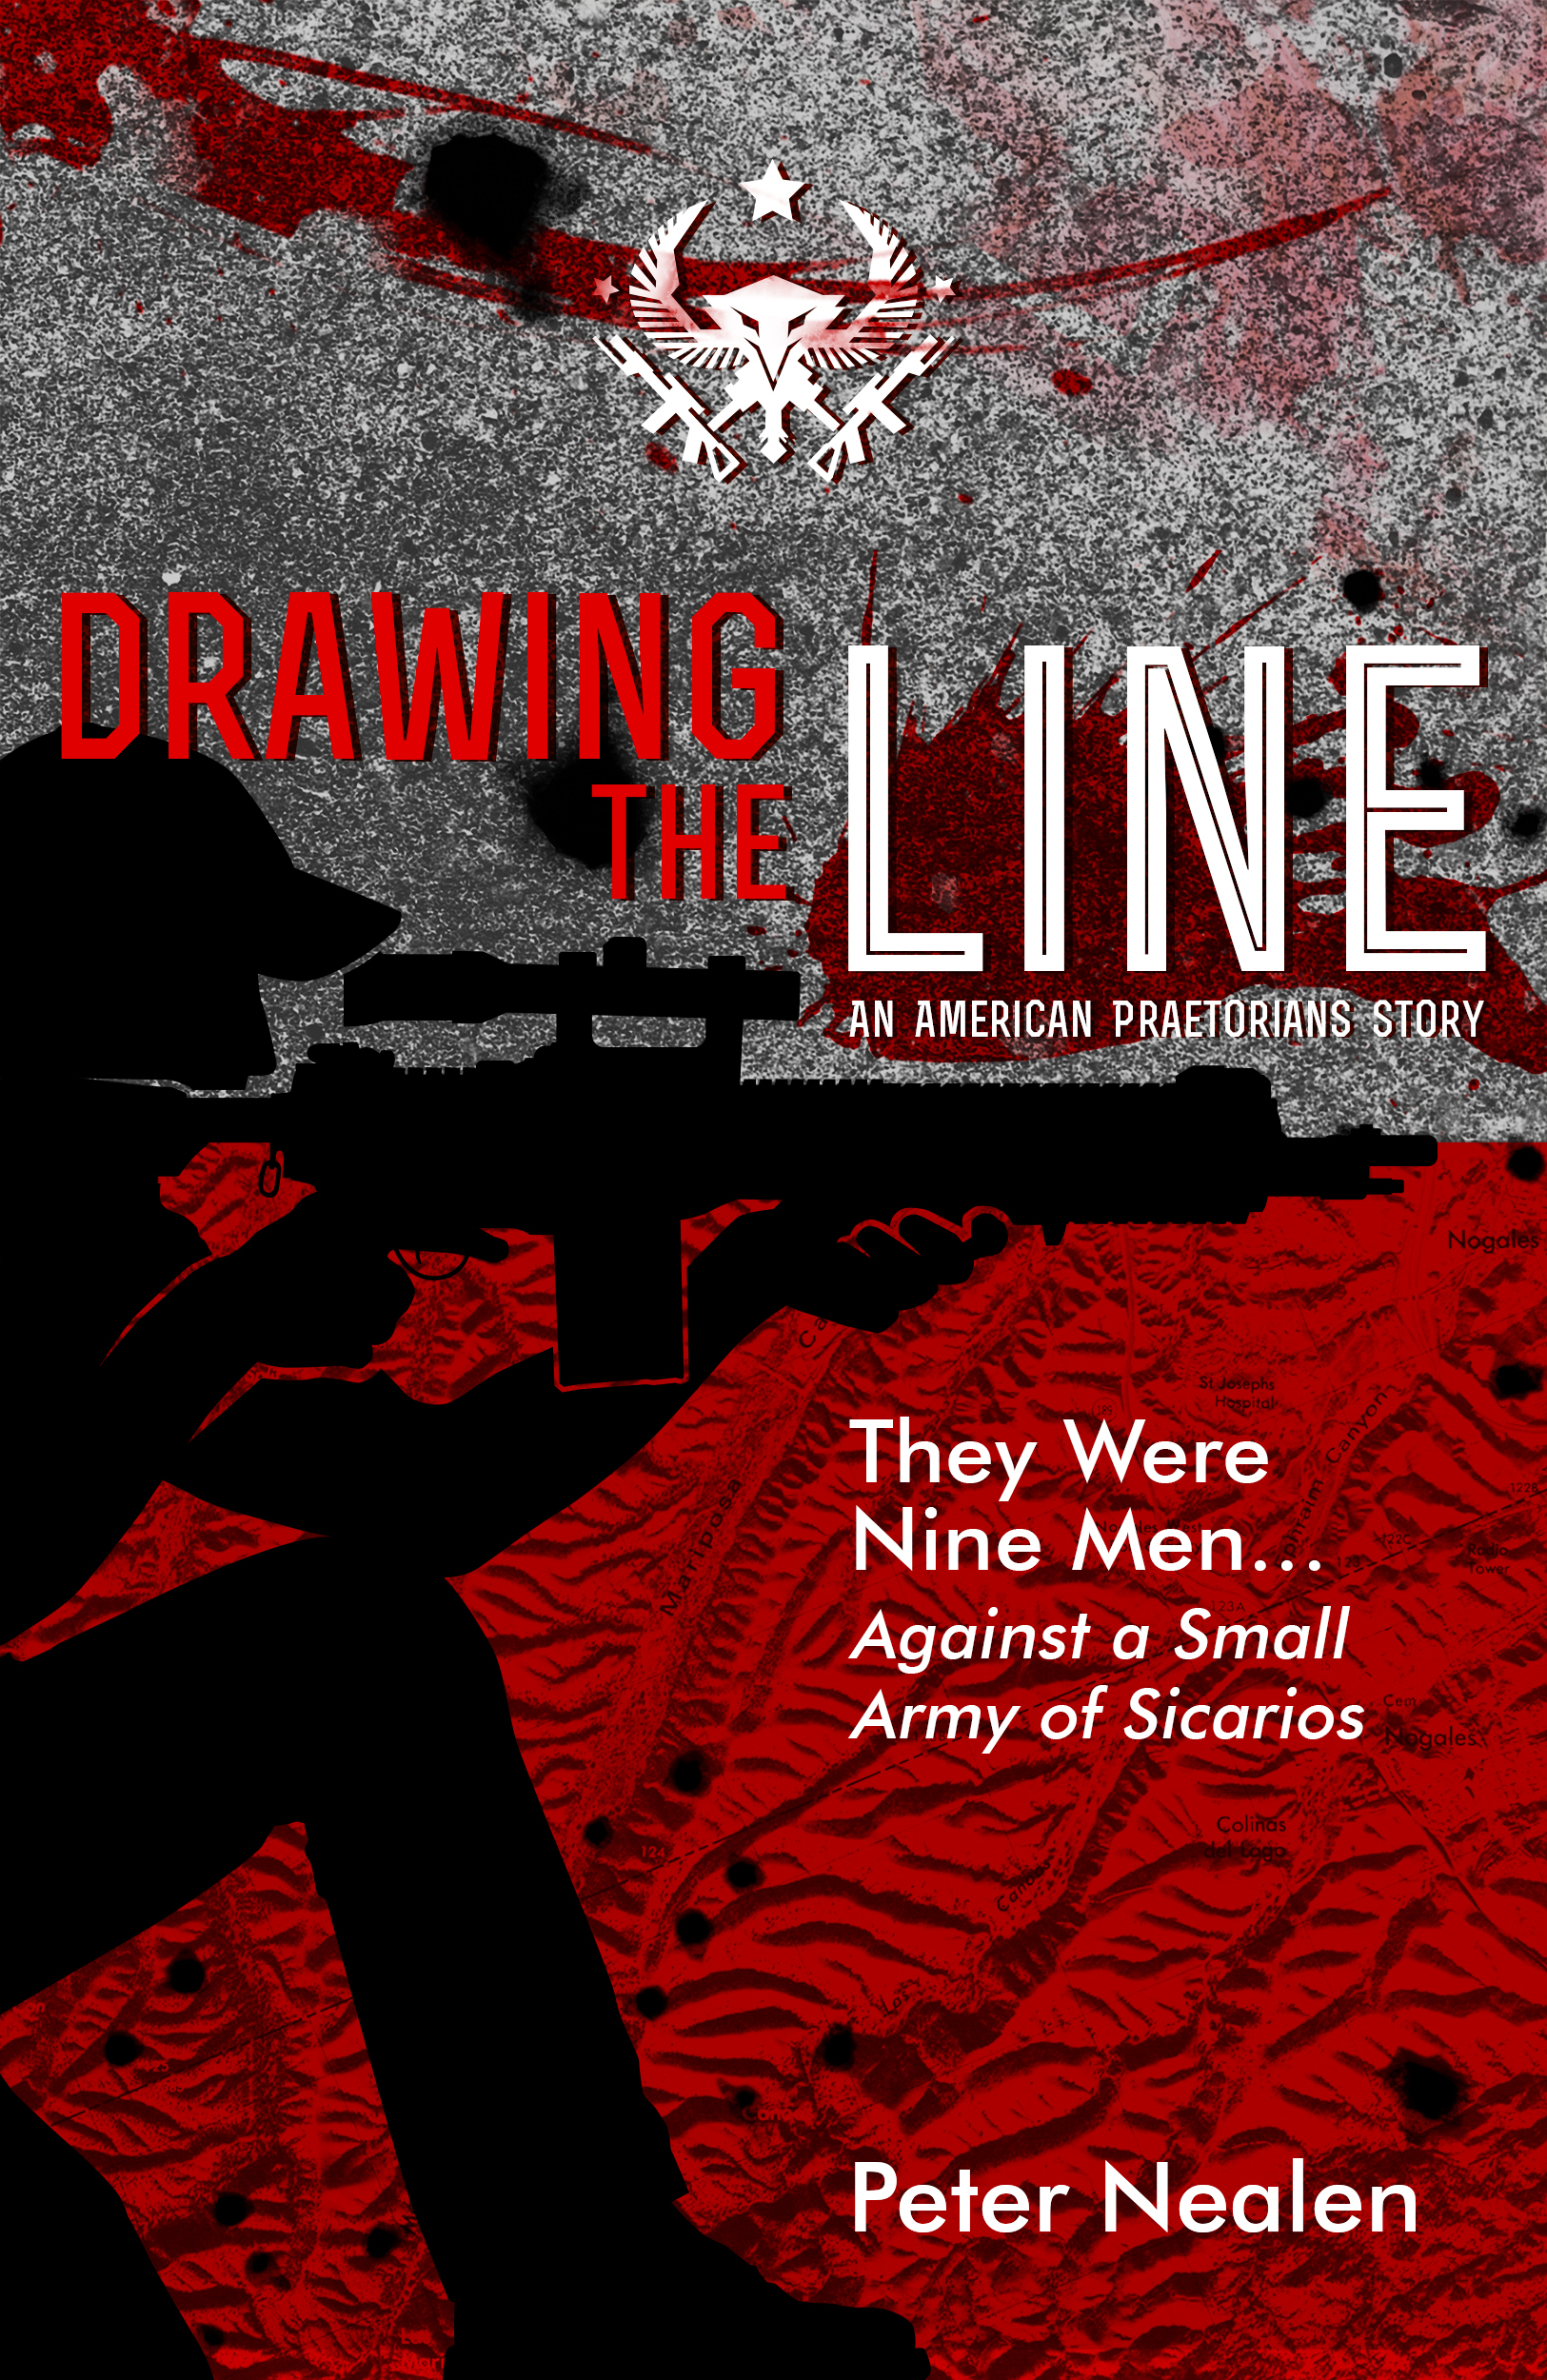 Drawing the Line by Peter Nealen